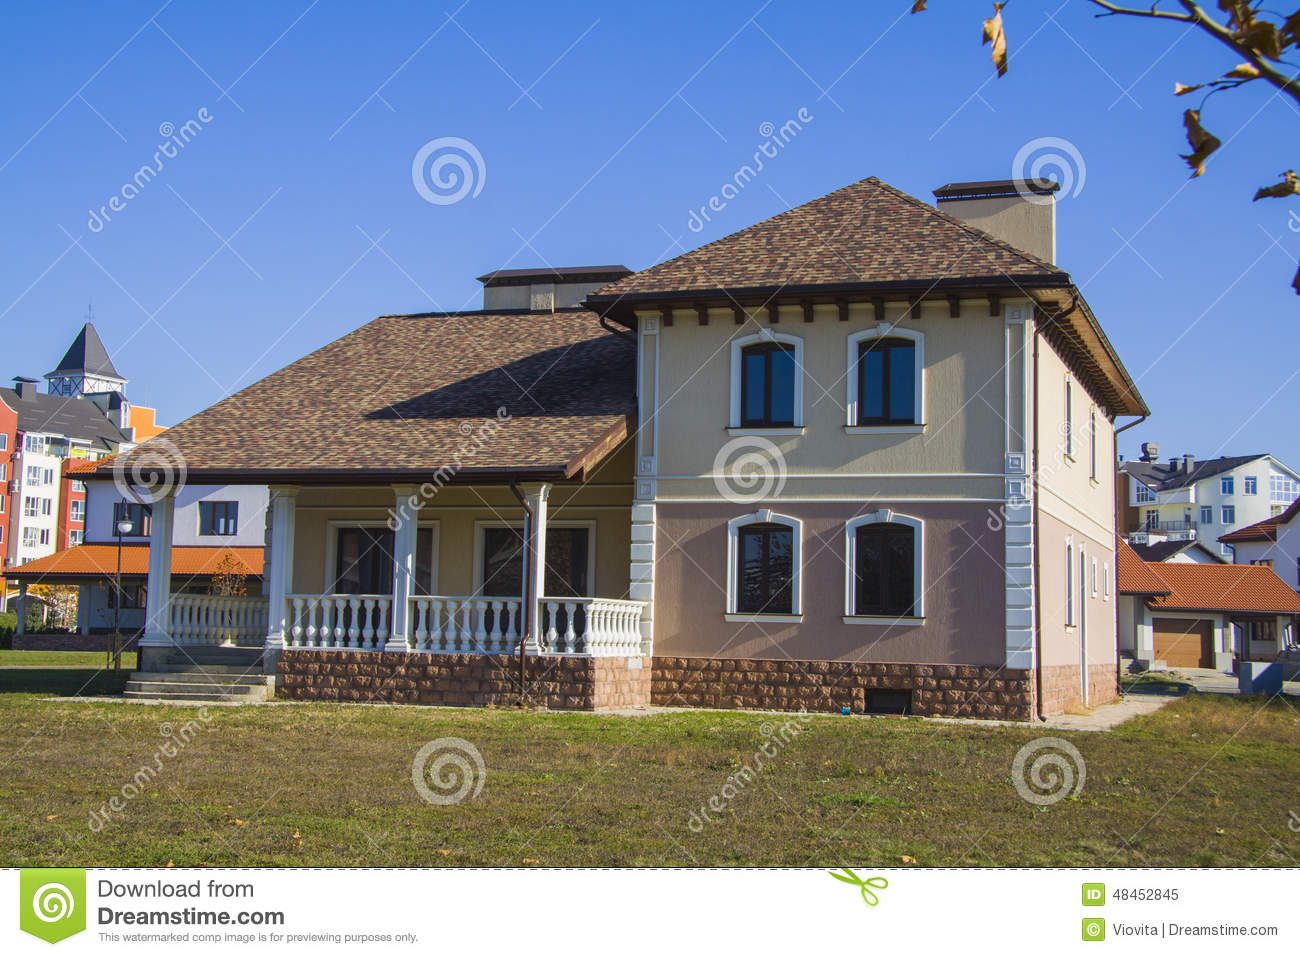 Newly built alpine house in german village stock image for German house builders